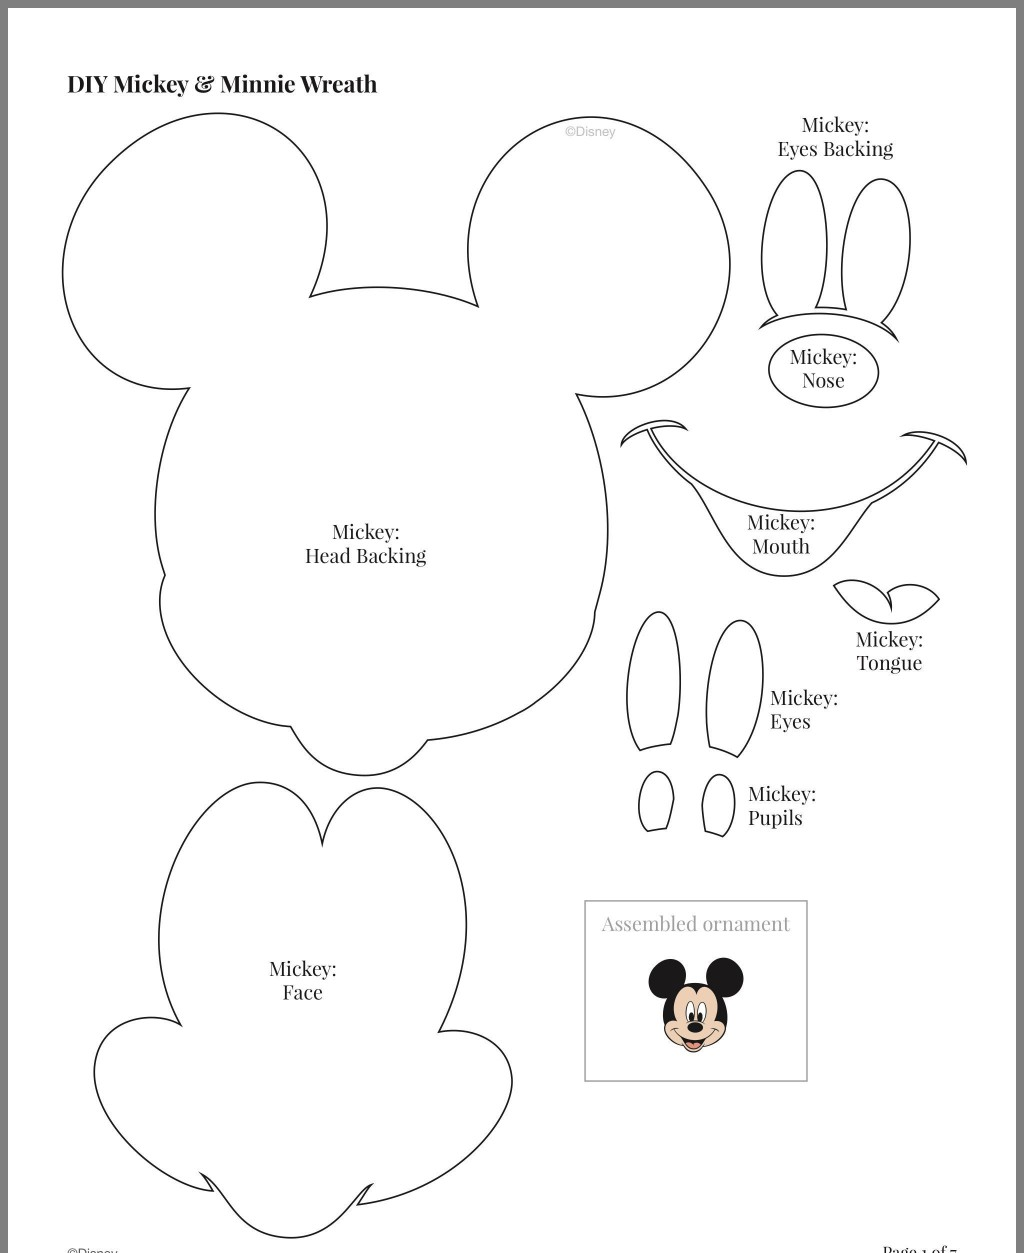 008 Breathtaking Mickey Mouse Face Template For Cake Highest Clarity  PrintableLarge